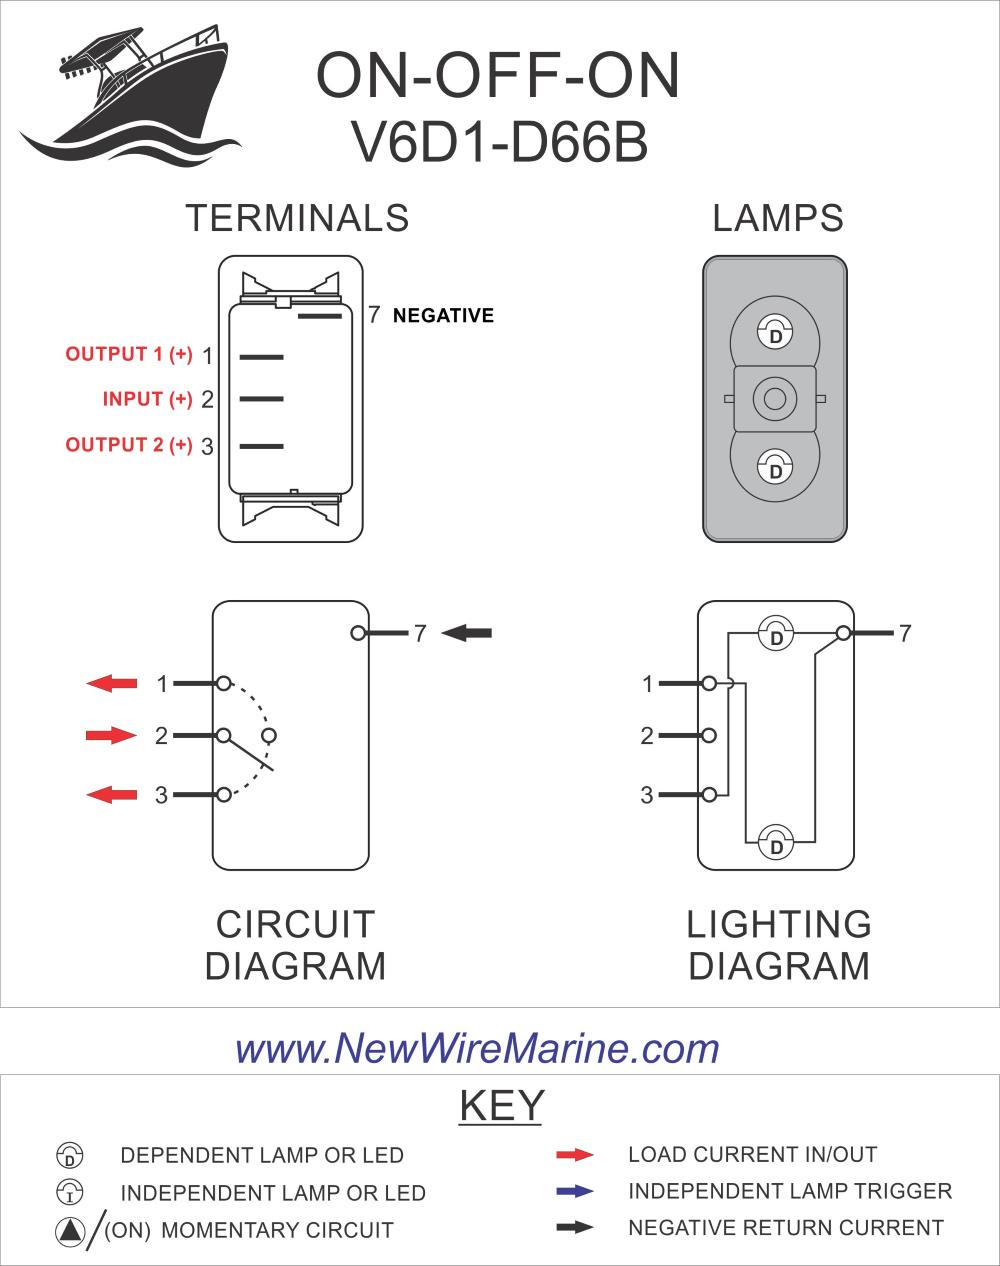 Carling Switch Wiring Diagrams : carling, switch, wiring, diagrams, V6D1-D66B, ON-OFF-ON,, Rocker, Switch, Marine